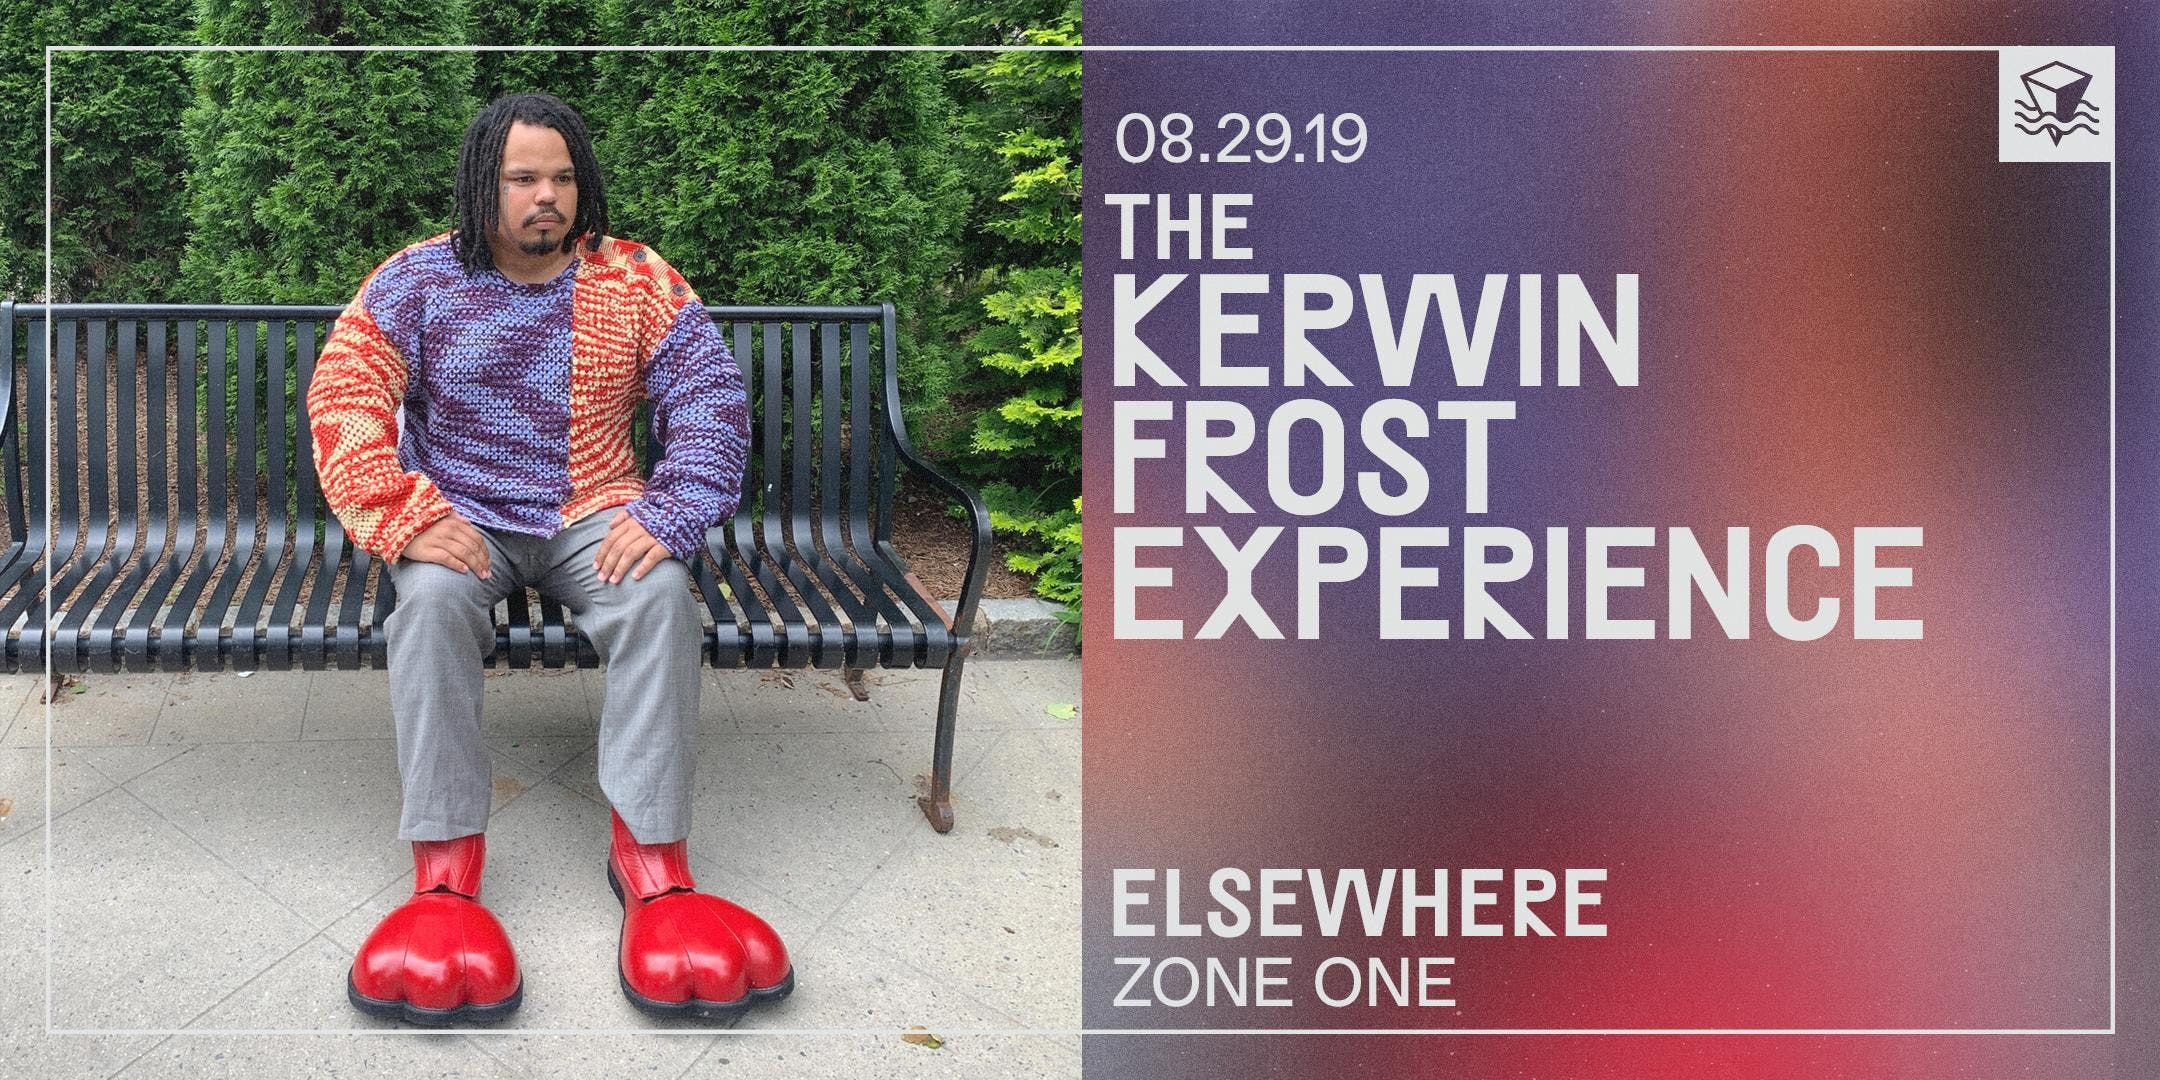 The Kerwin Frost Experience